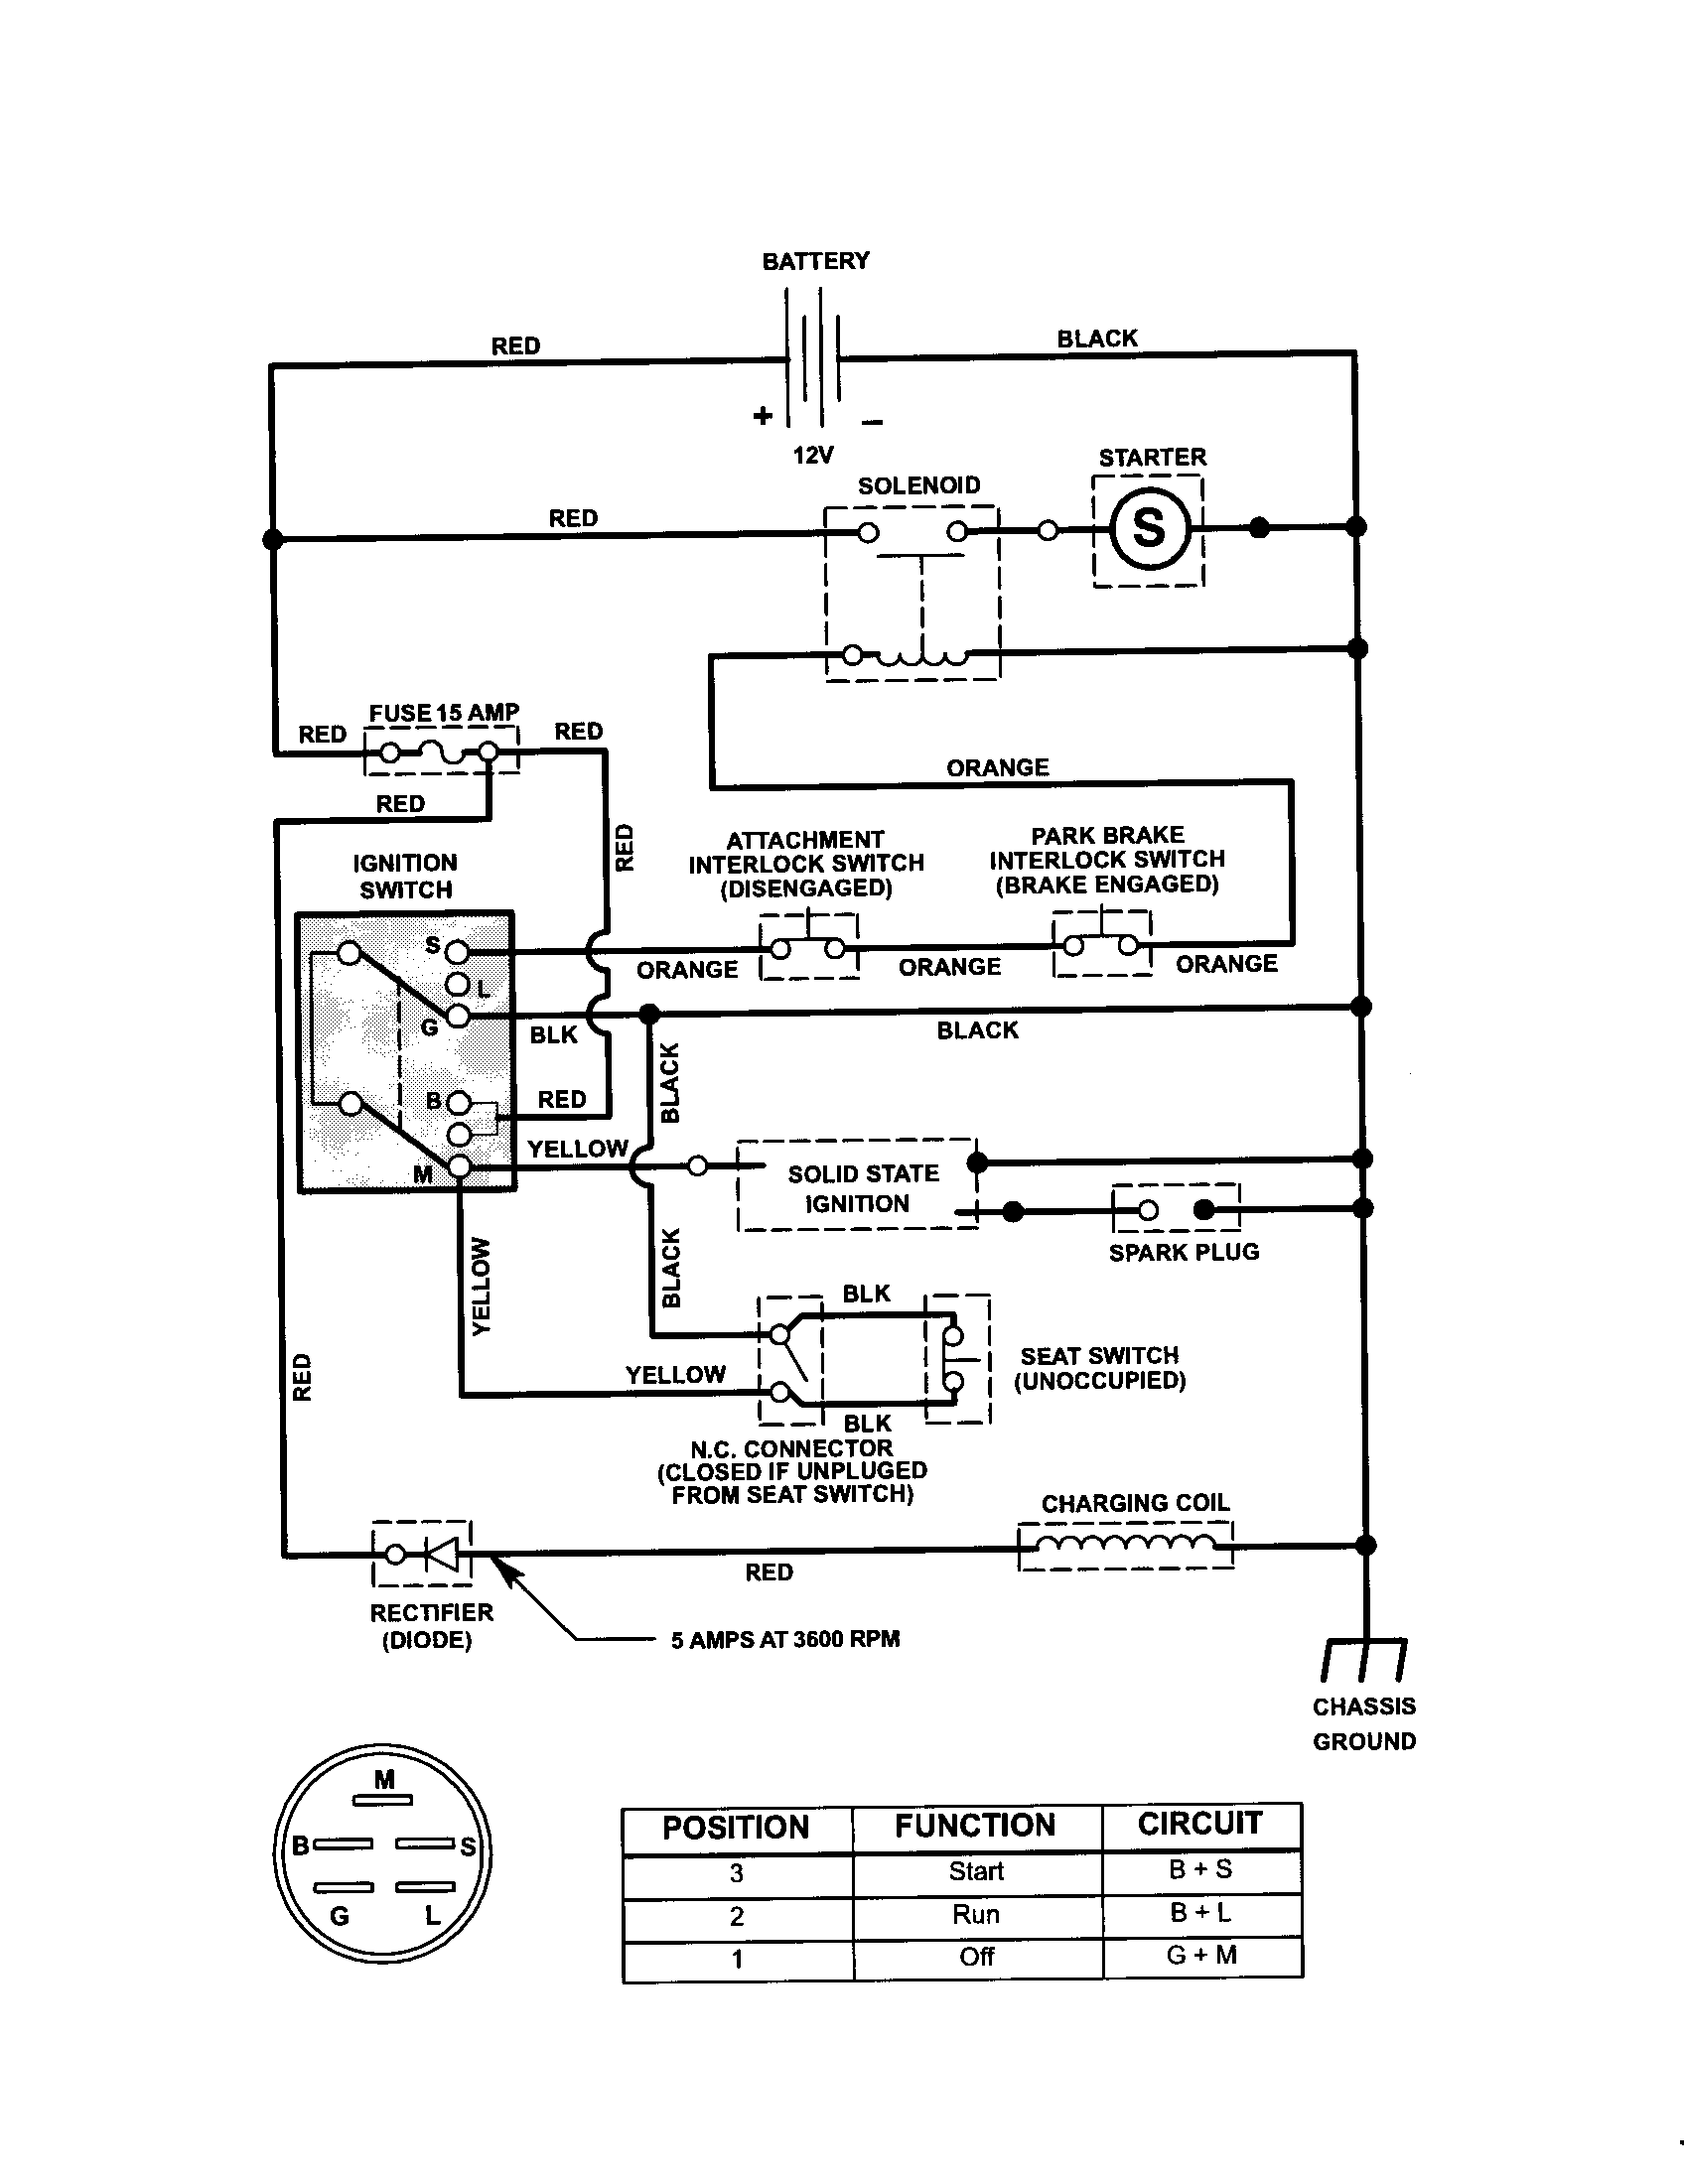 Wiring Diagram Craftsman 917 273761 | Wiring Diagram on